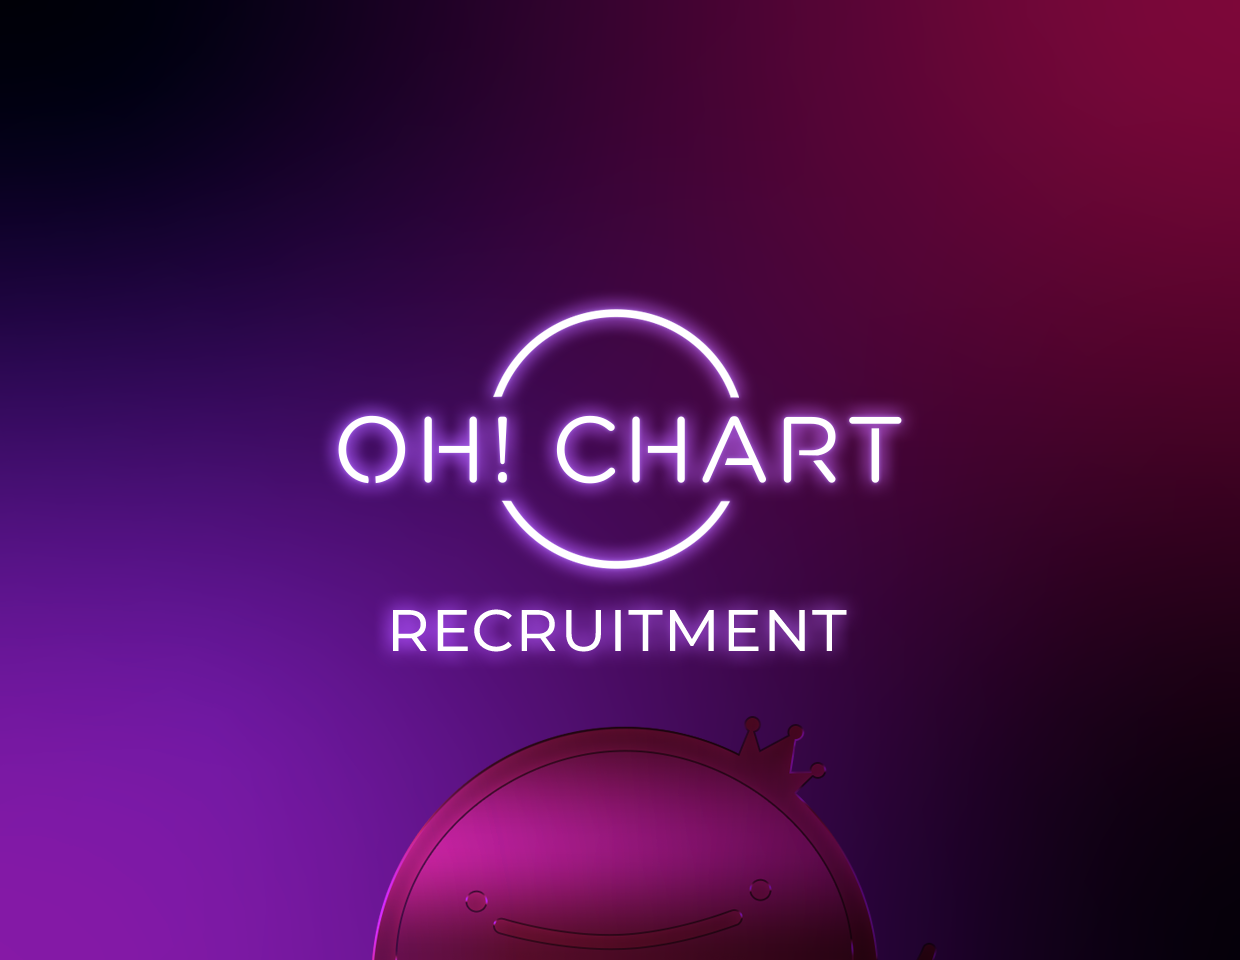 oh-chart-recruitment-header.png